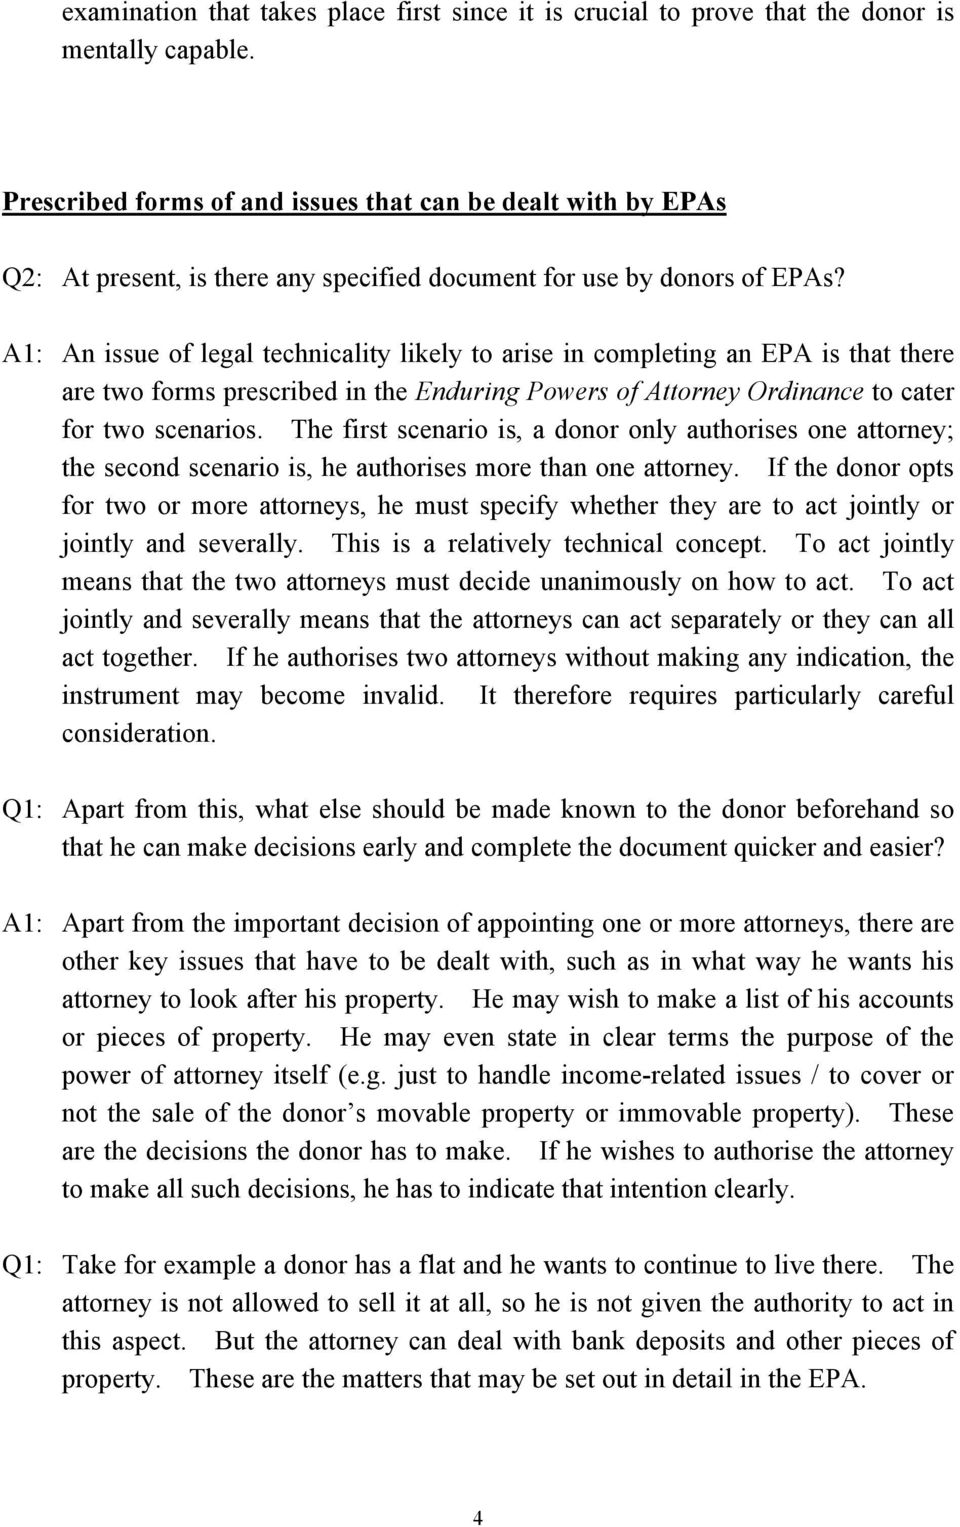 A1: An issue of legal technicality likely to arise in completing an EPA is that there are two forms prescribed in the Enduring Powers of Attorney Ordinance to cater for two scenarios.